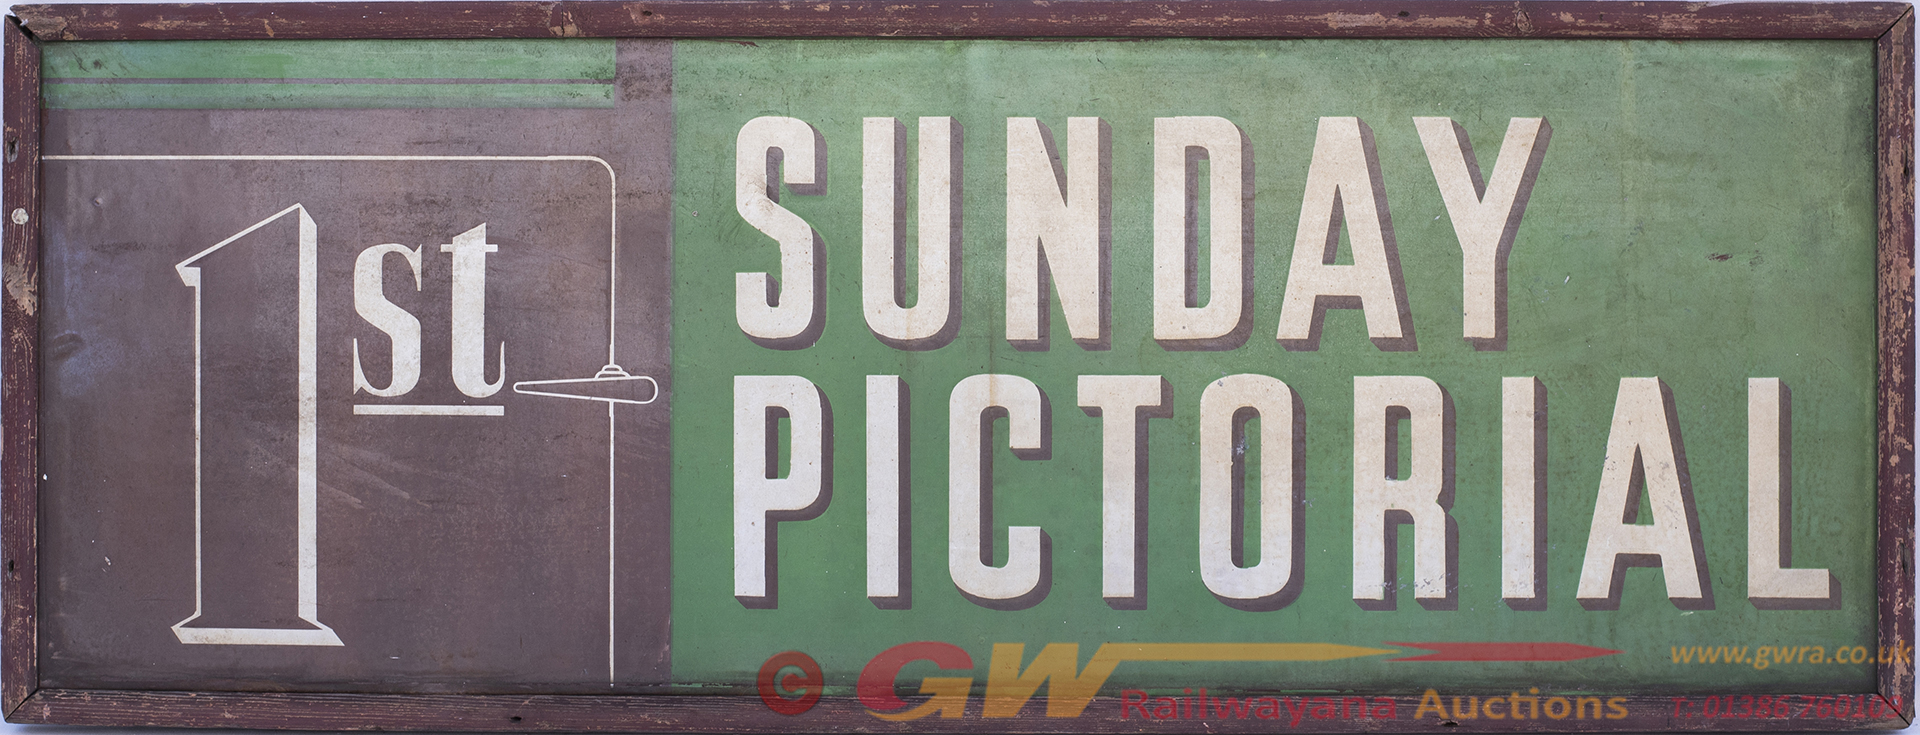 Advertising Enamel Sign 1st SUNDAY PICTORIAL In